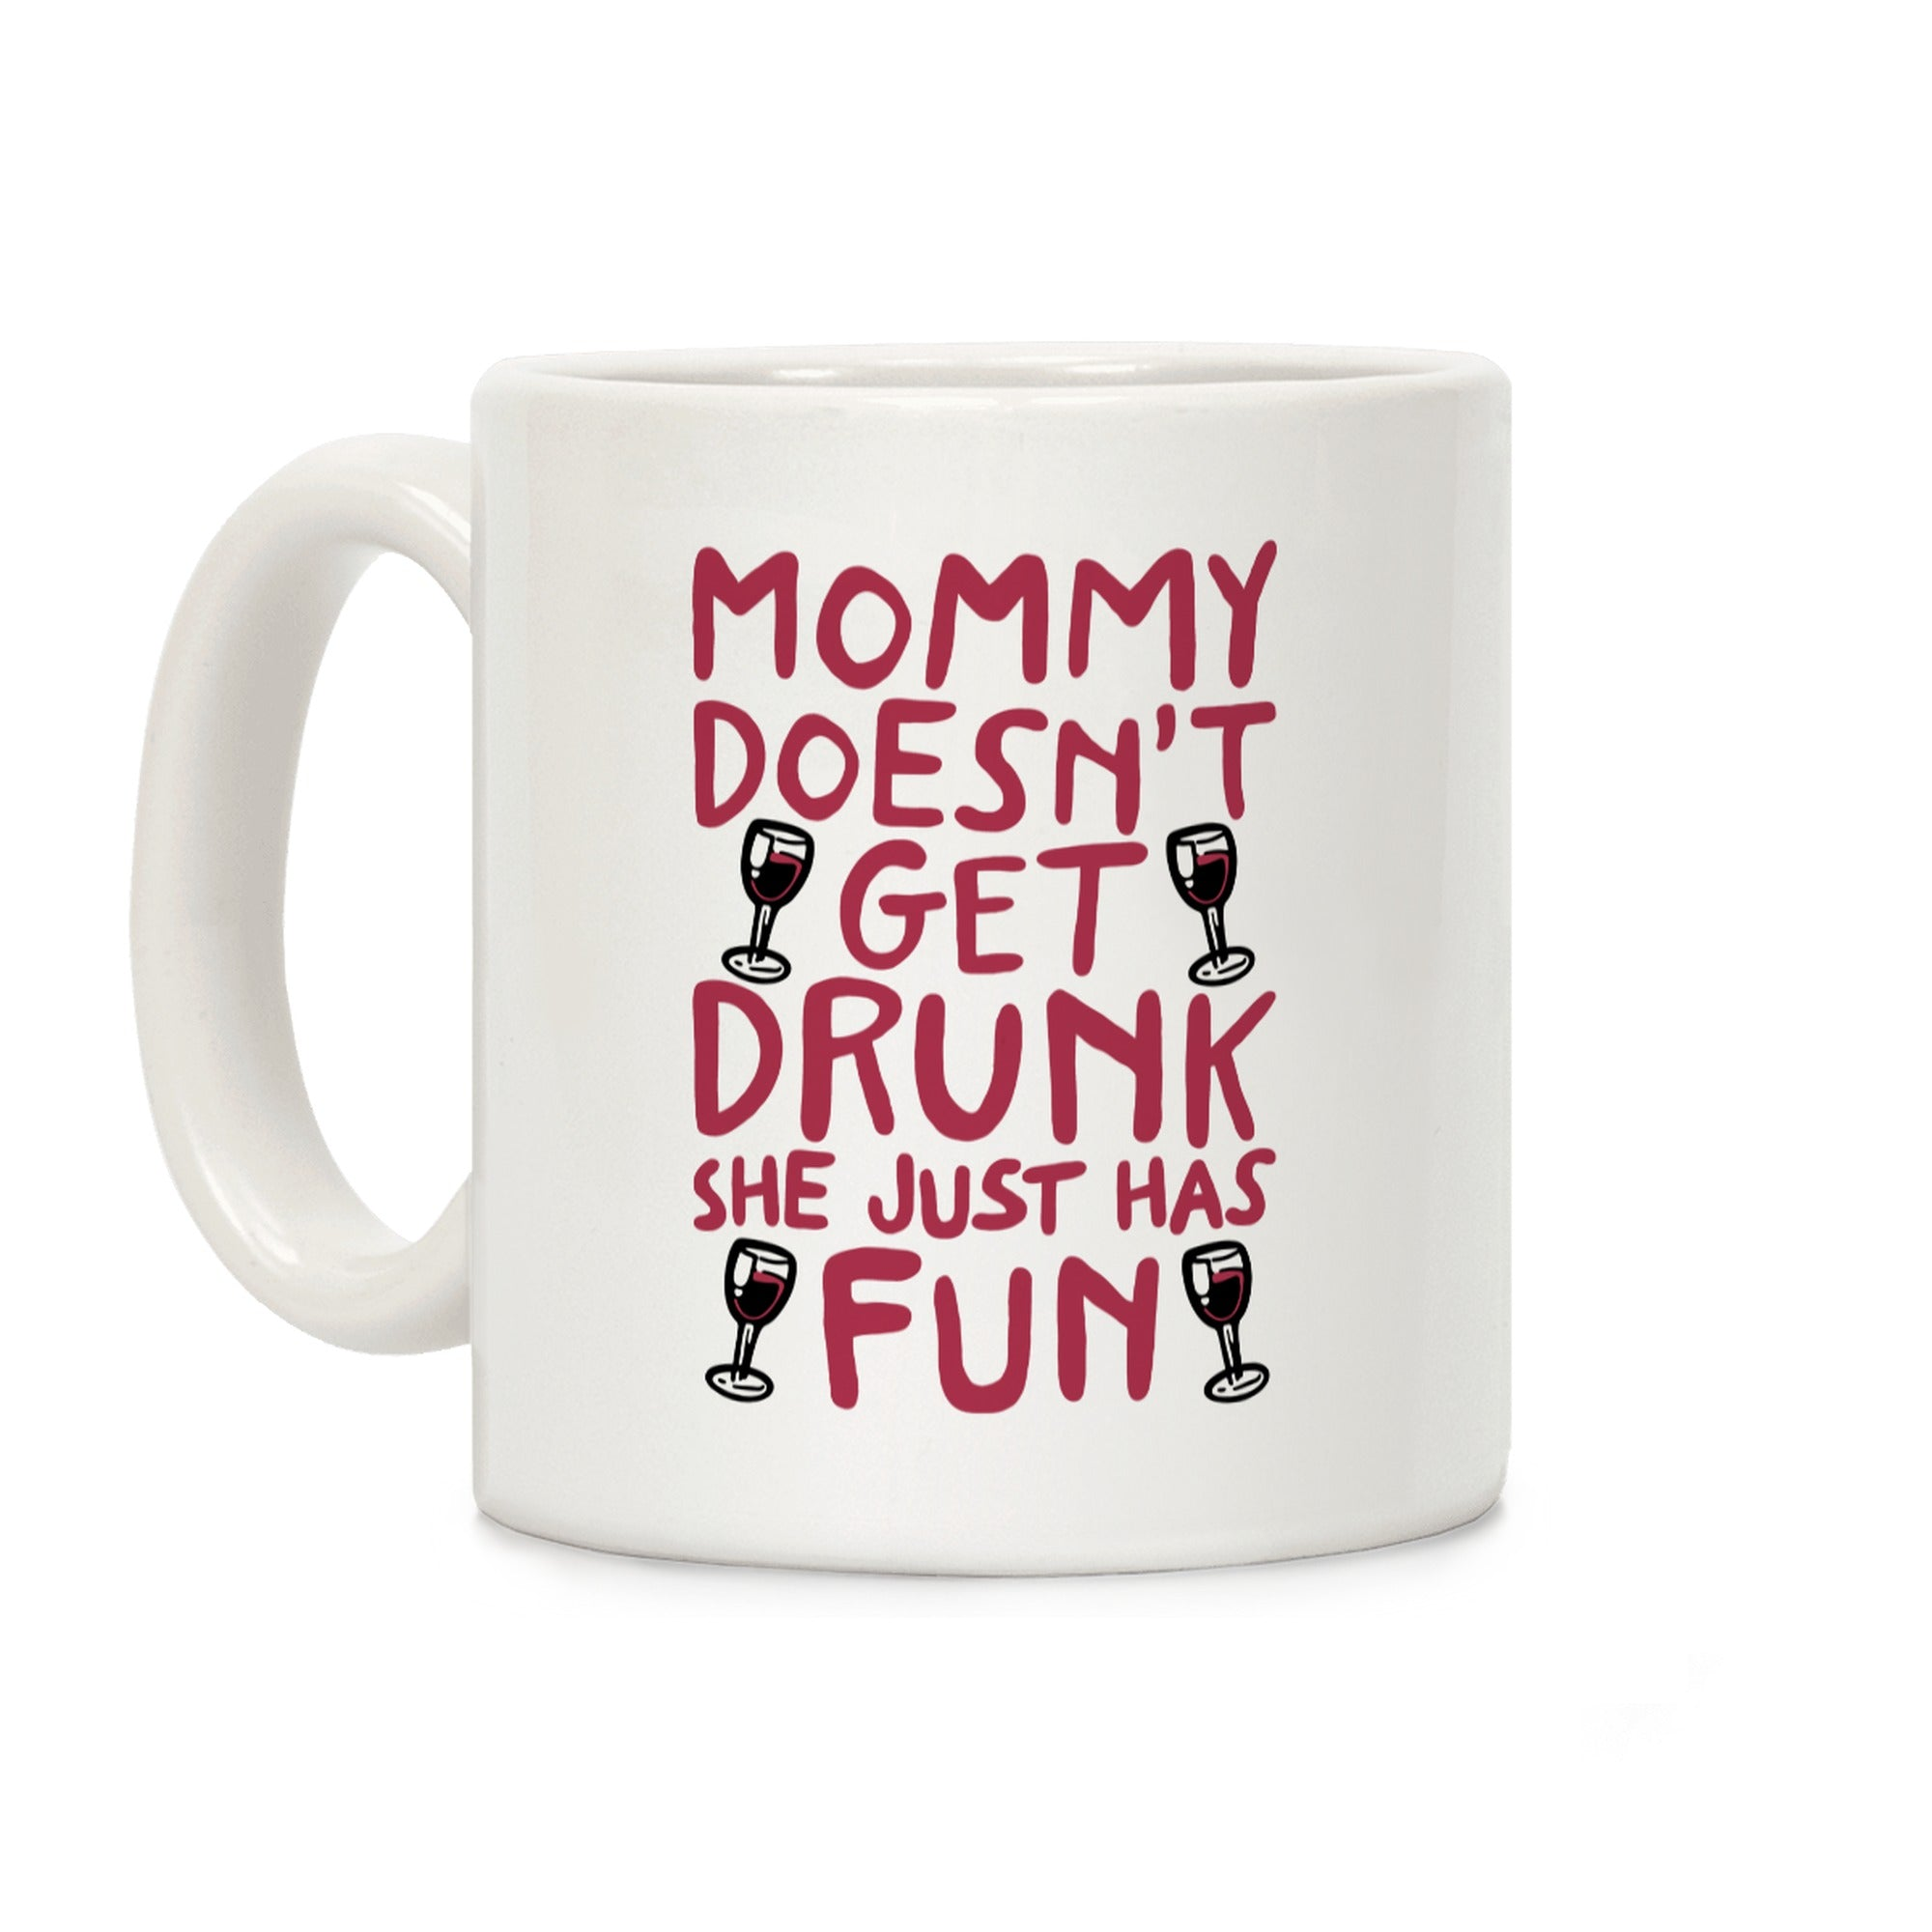 Mommy Doesn't Get Drunk Ceramic Coffee Mug by Look